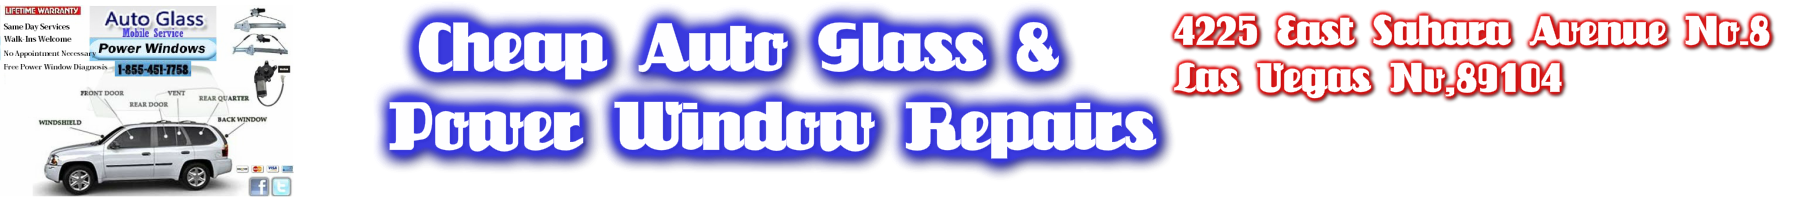 Auto Glass Services In Las Vegas Nevada , Auto Glass Repairs, Auto Glass Replacements, Windshield Repairs,Windshield Replacements,Mobile Auto Window Installations,Power Window Repairs,Manual Window repairs,window regulators,window motors,window switches,o